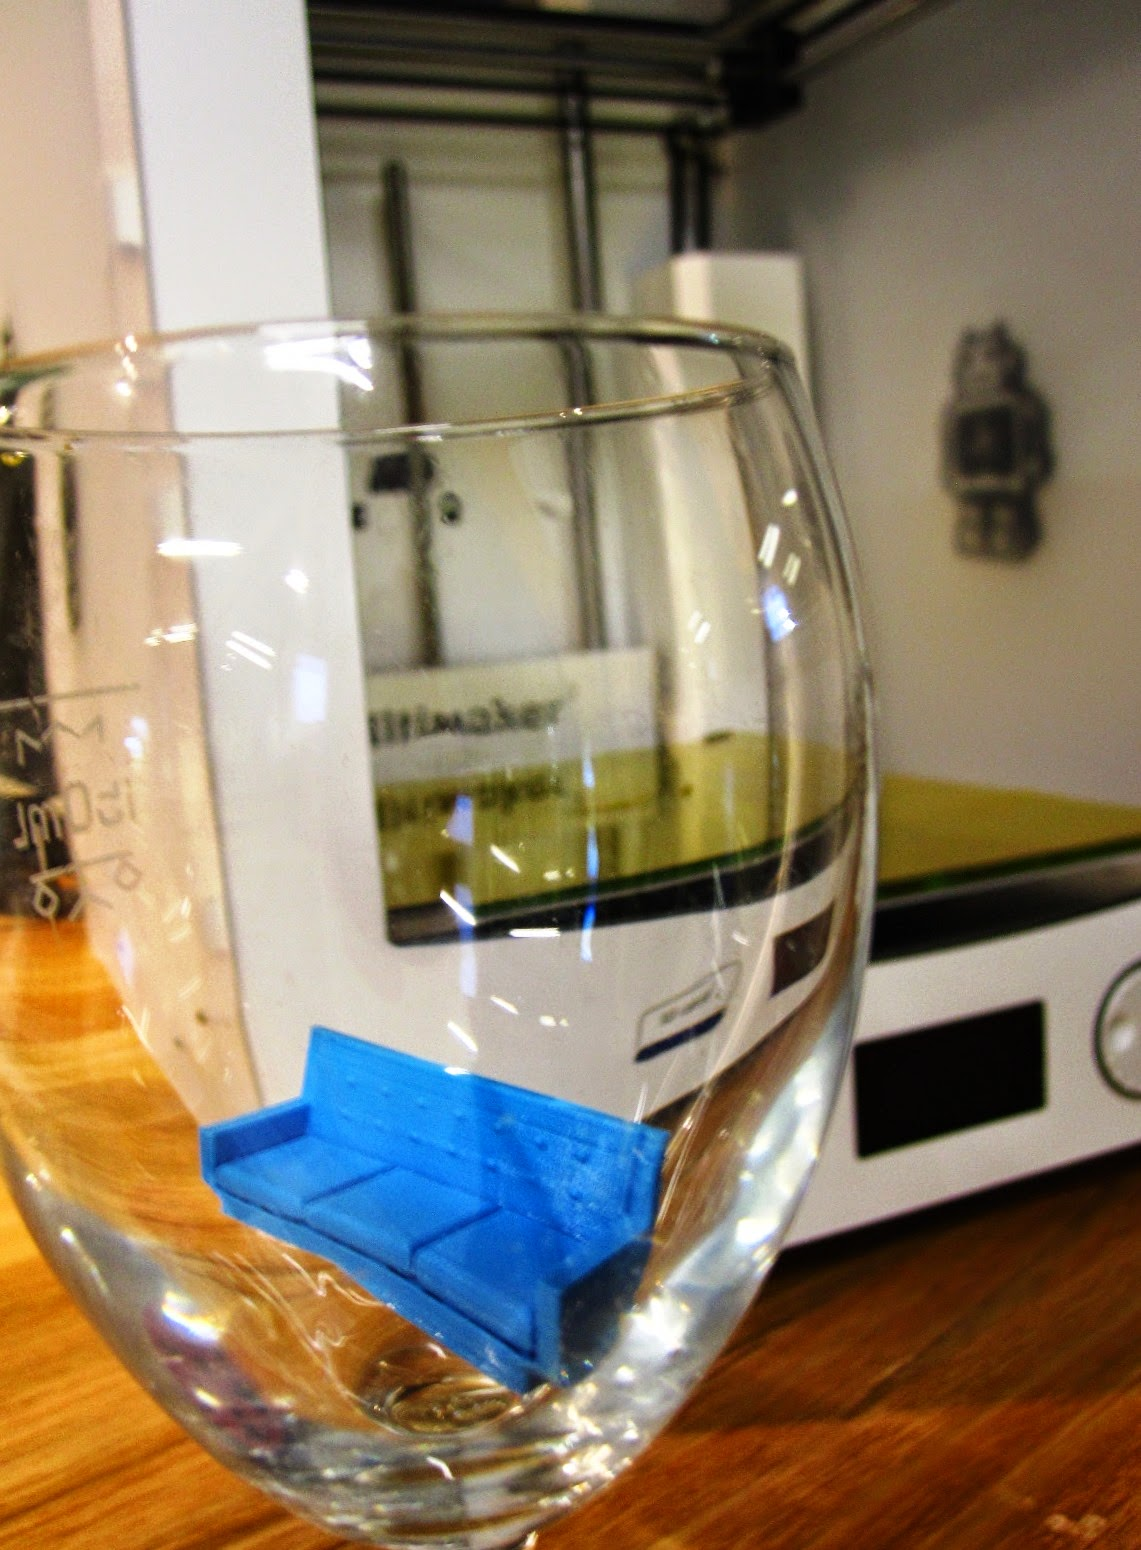 Miniature 3D-printed sofa in an empty wine glass in front of the 3D printer that printed it.